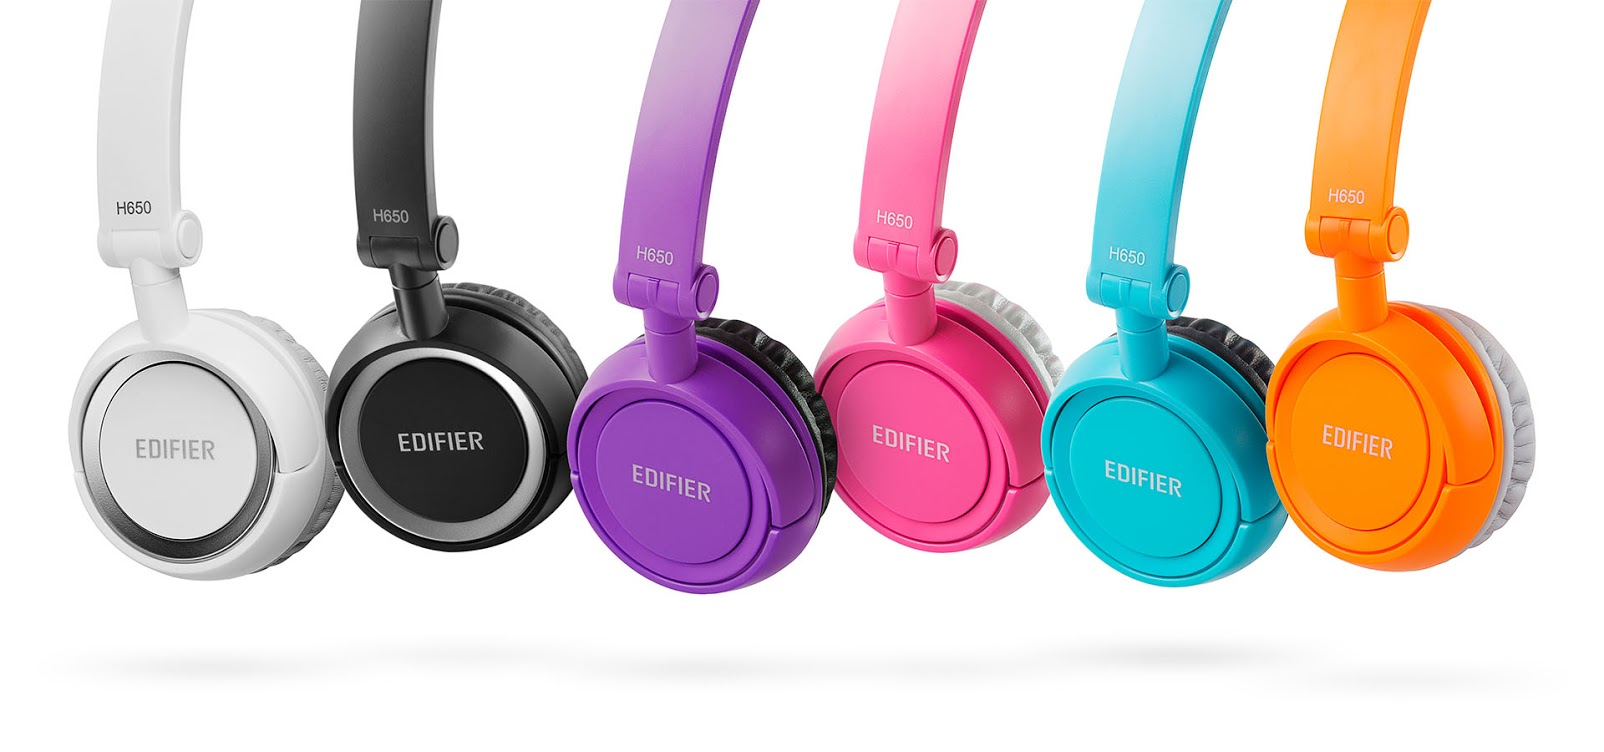 Edifier headphones perform like award-winning speakers